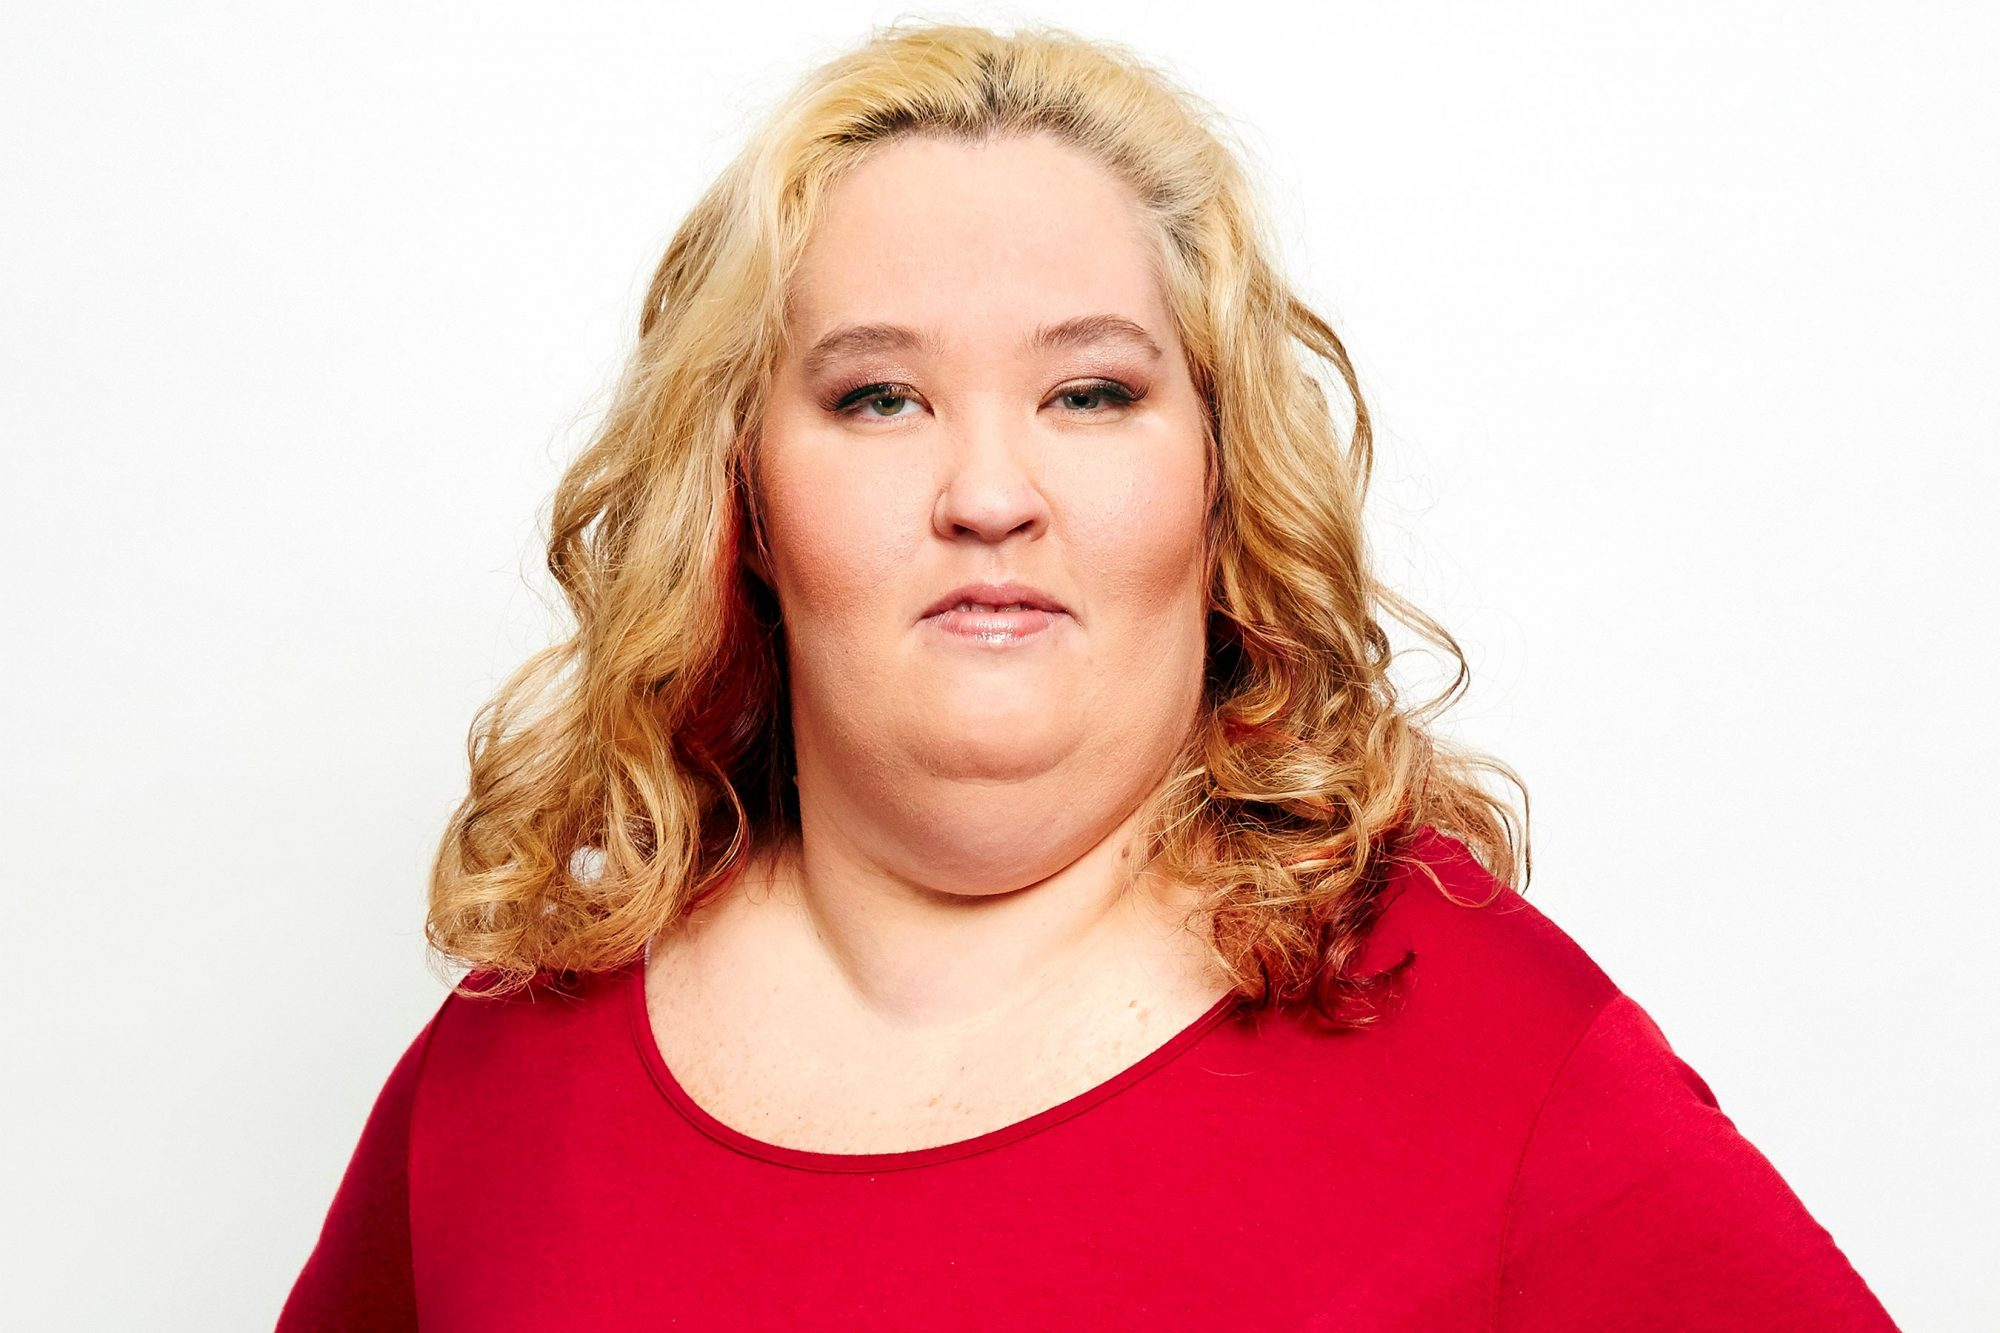 Mama June and Sugar Bear Portrait Session, New York, USA